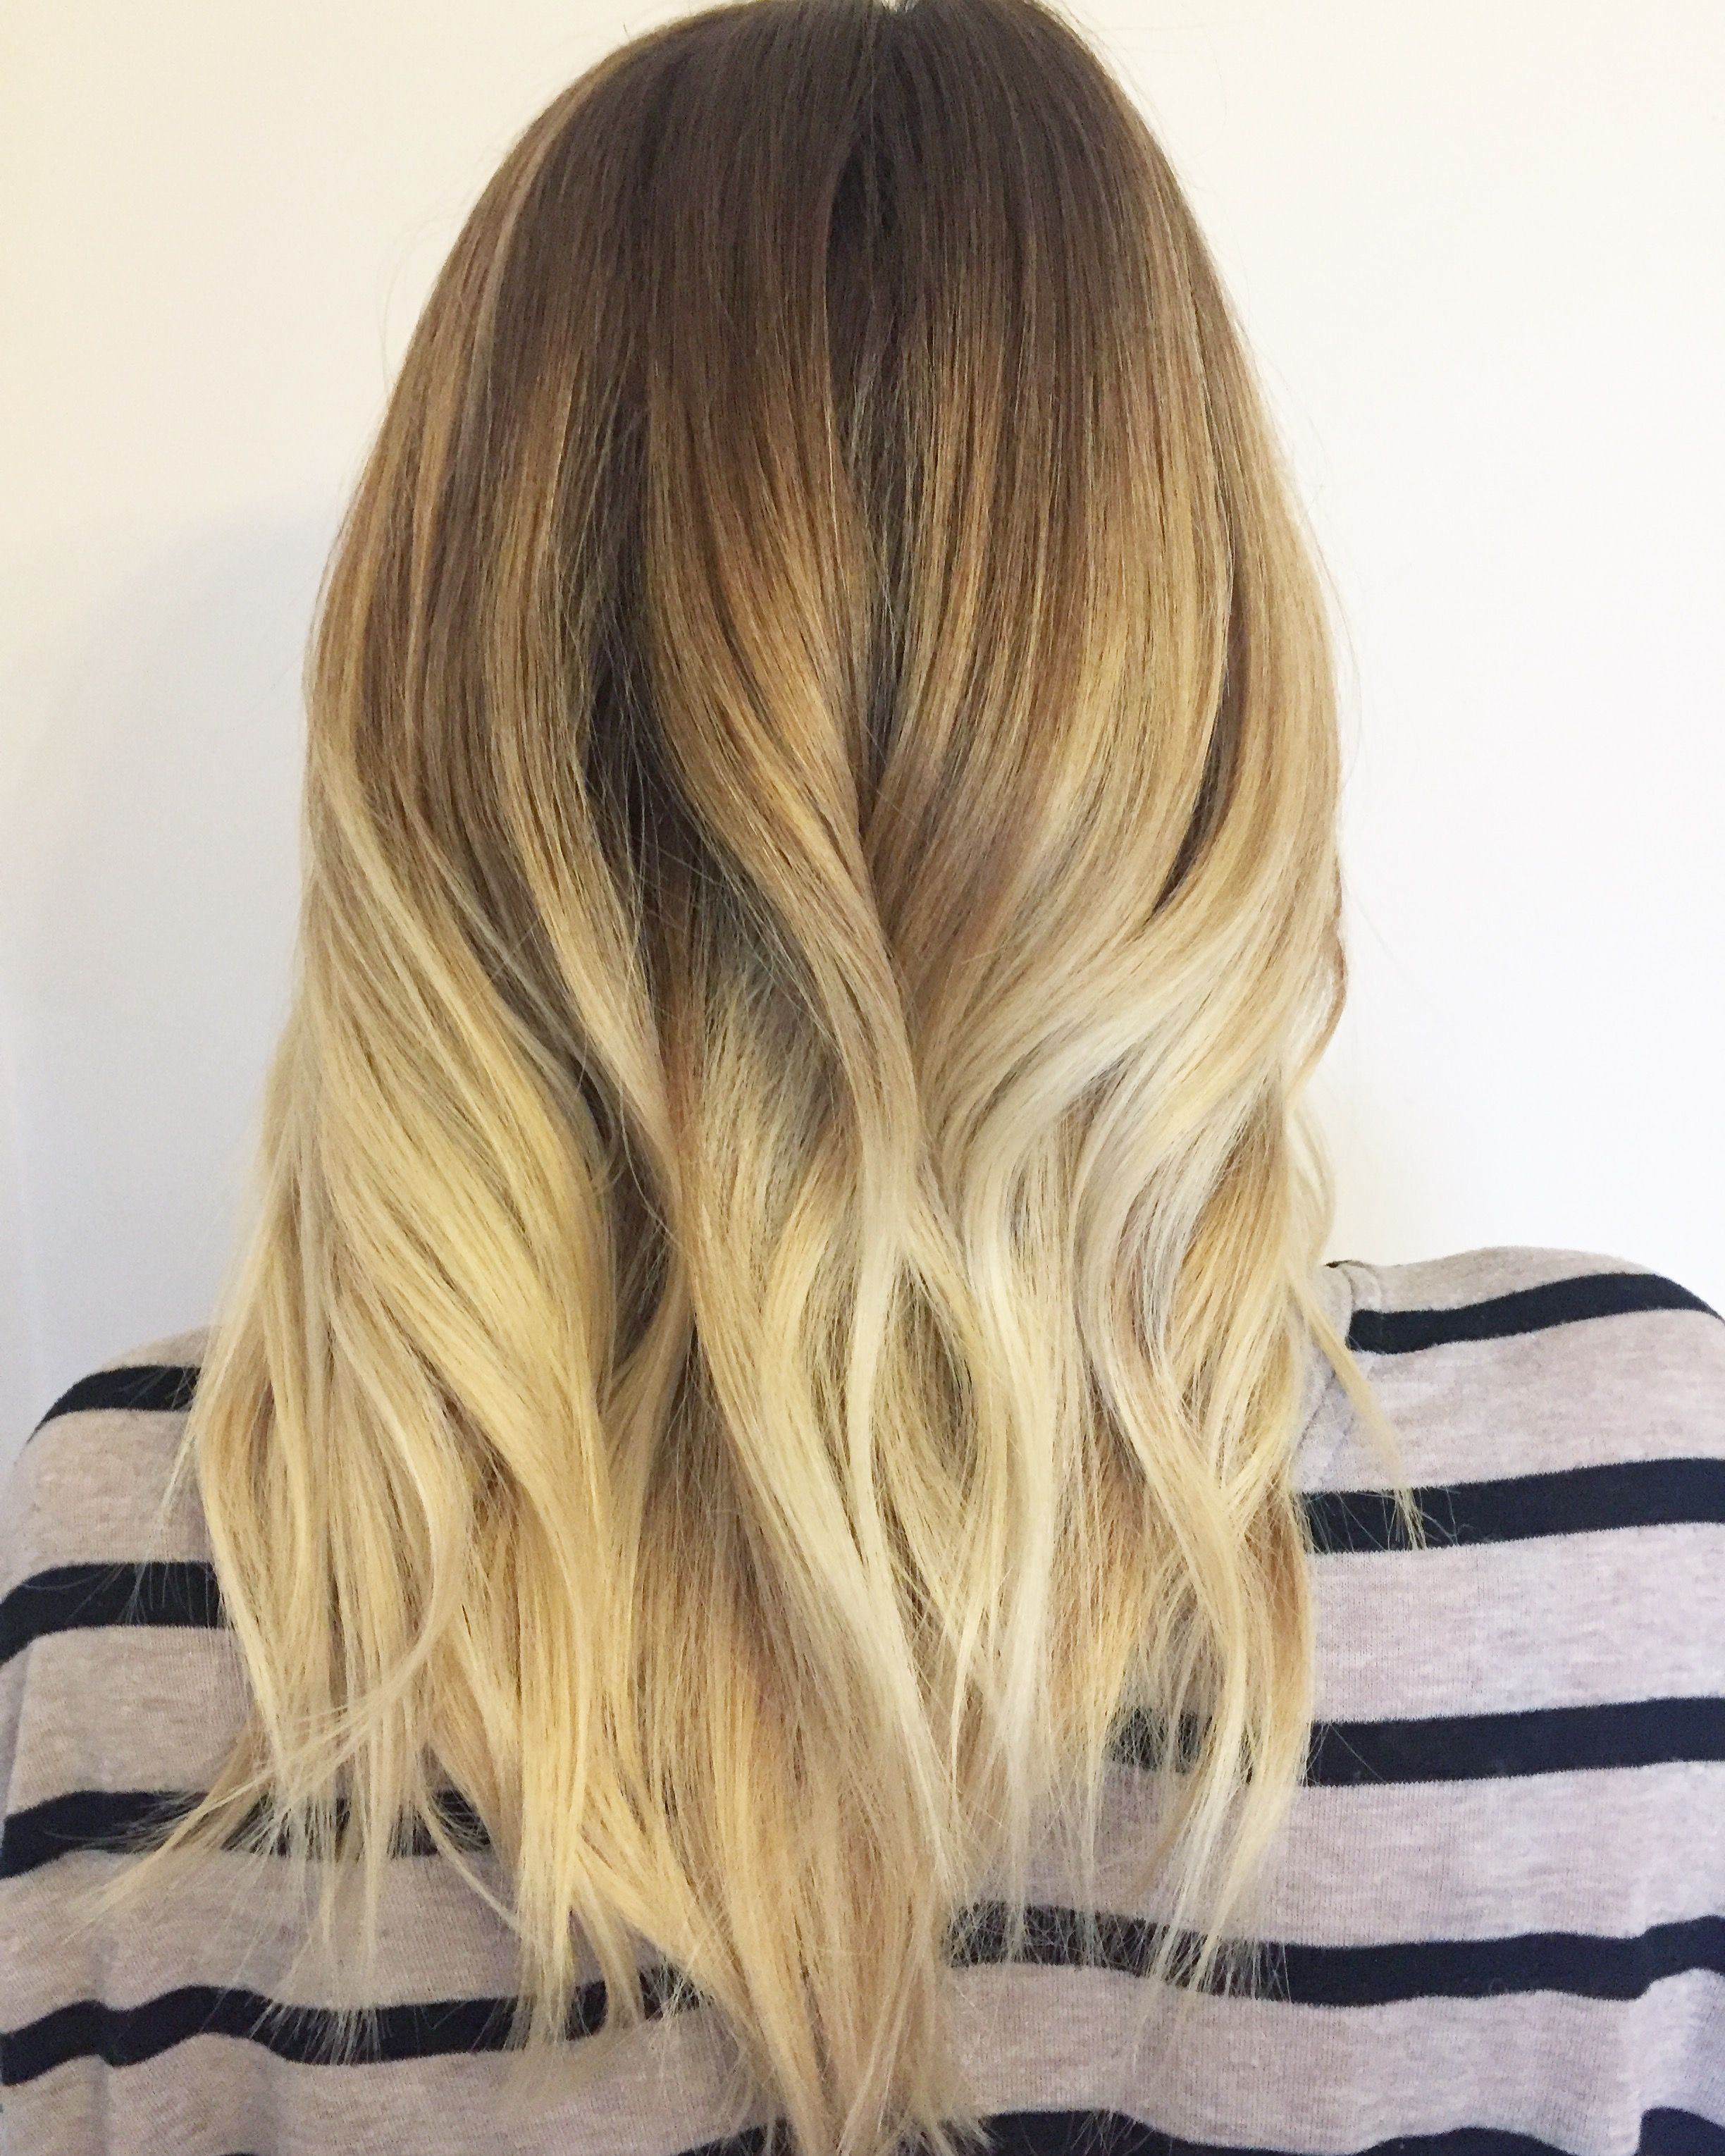 Solid golden blonde hair balayage that blends to beautiful